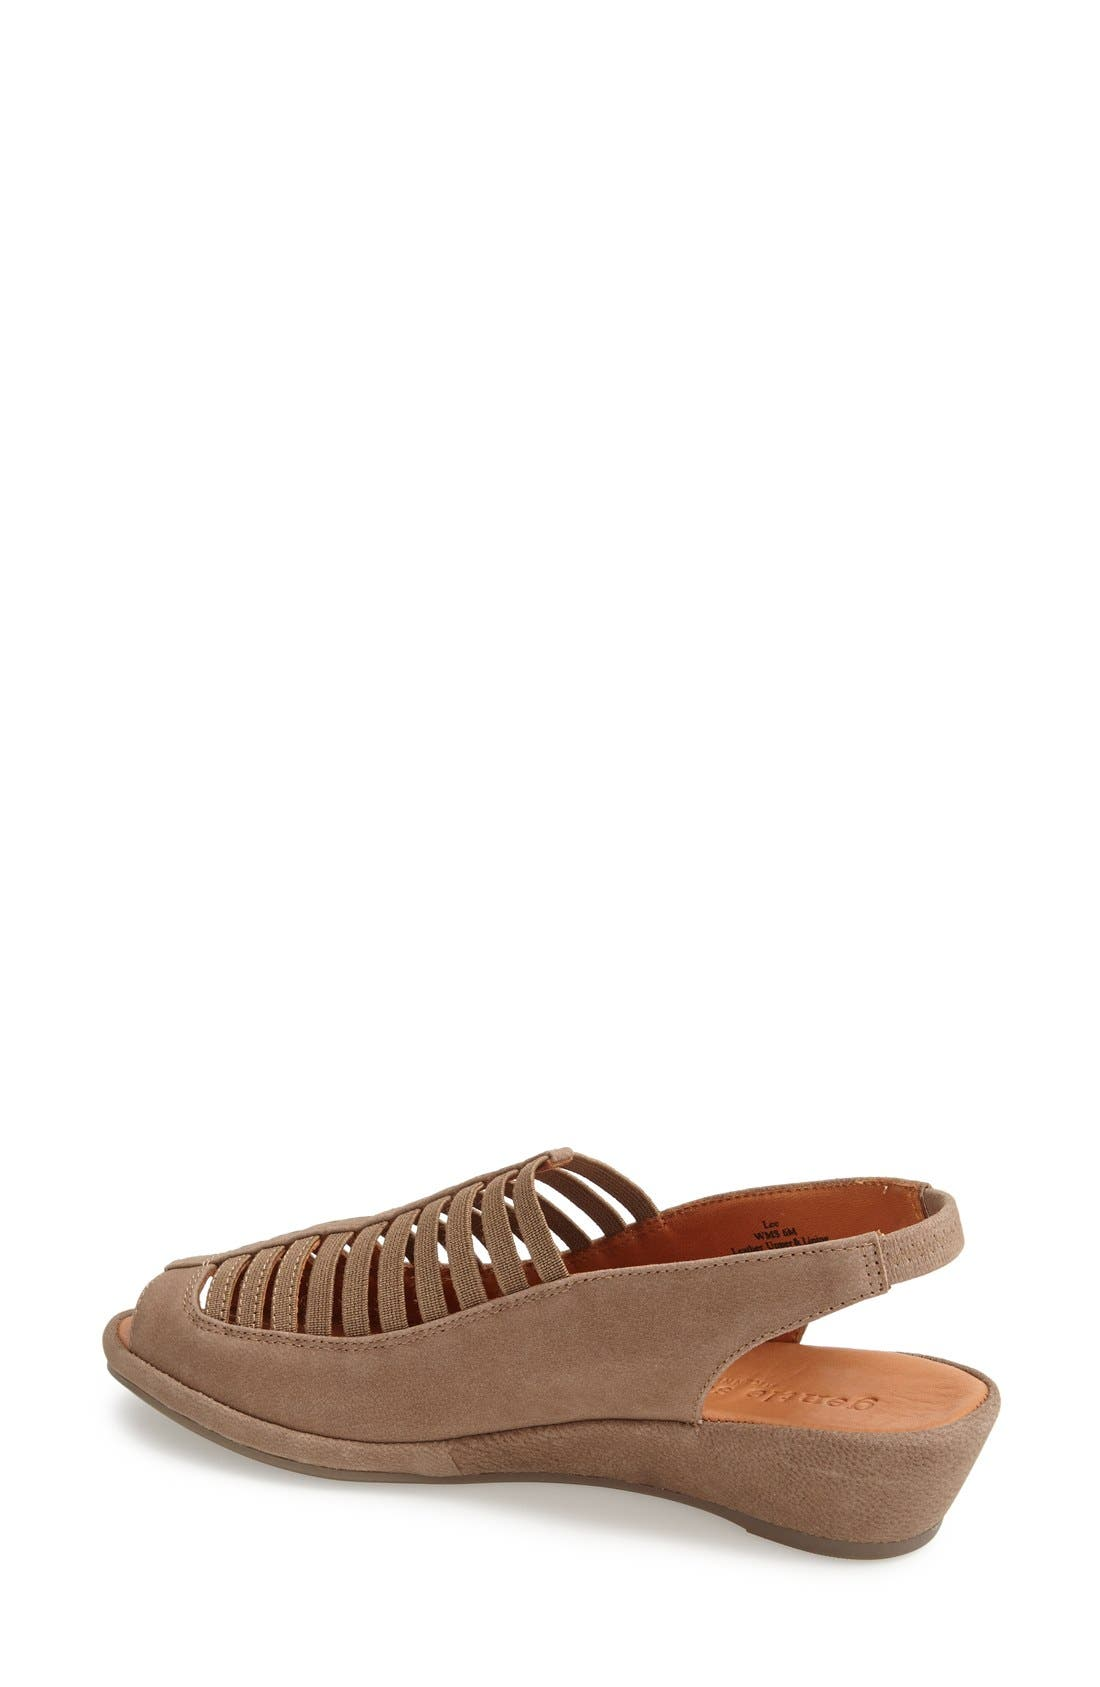 by Kenneth Cole 'Lee' Sandal,                             Alternate thumbnail 10, color,